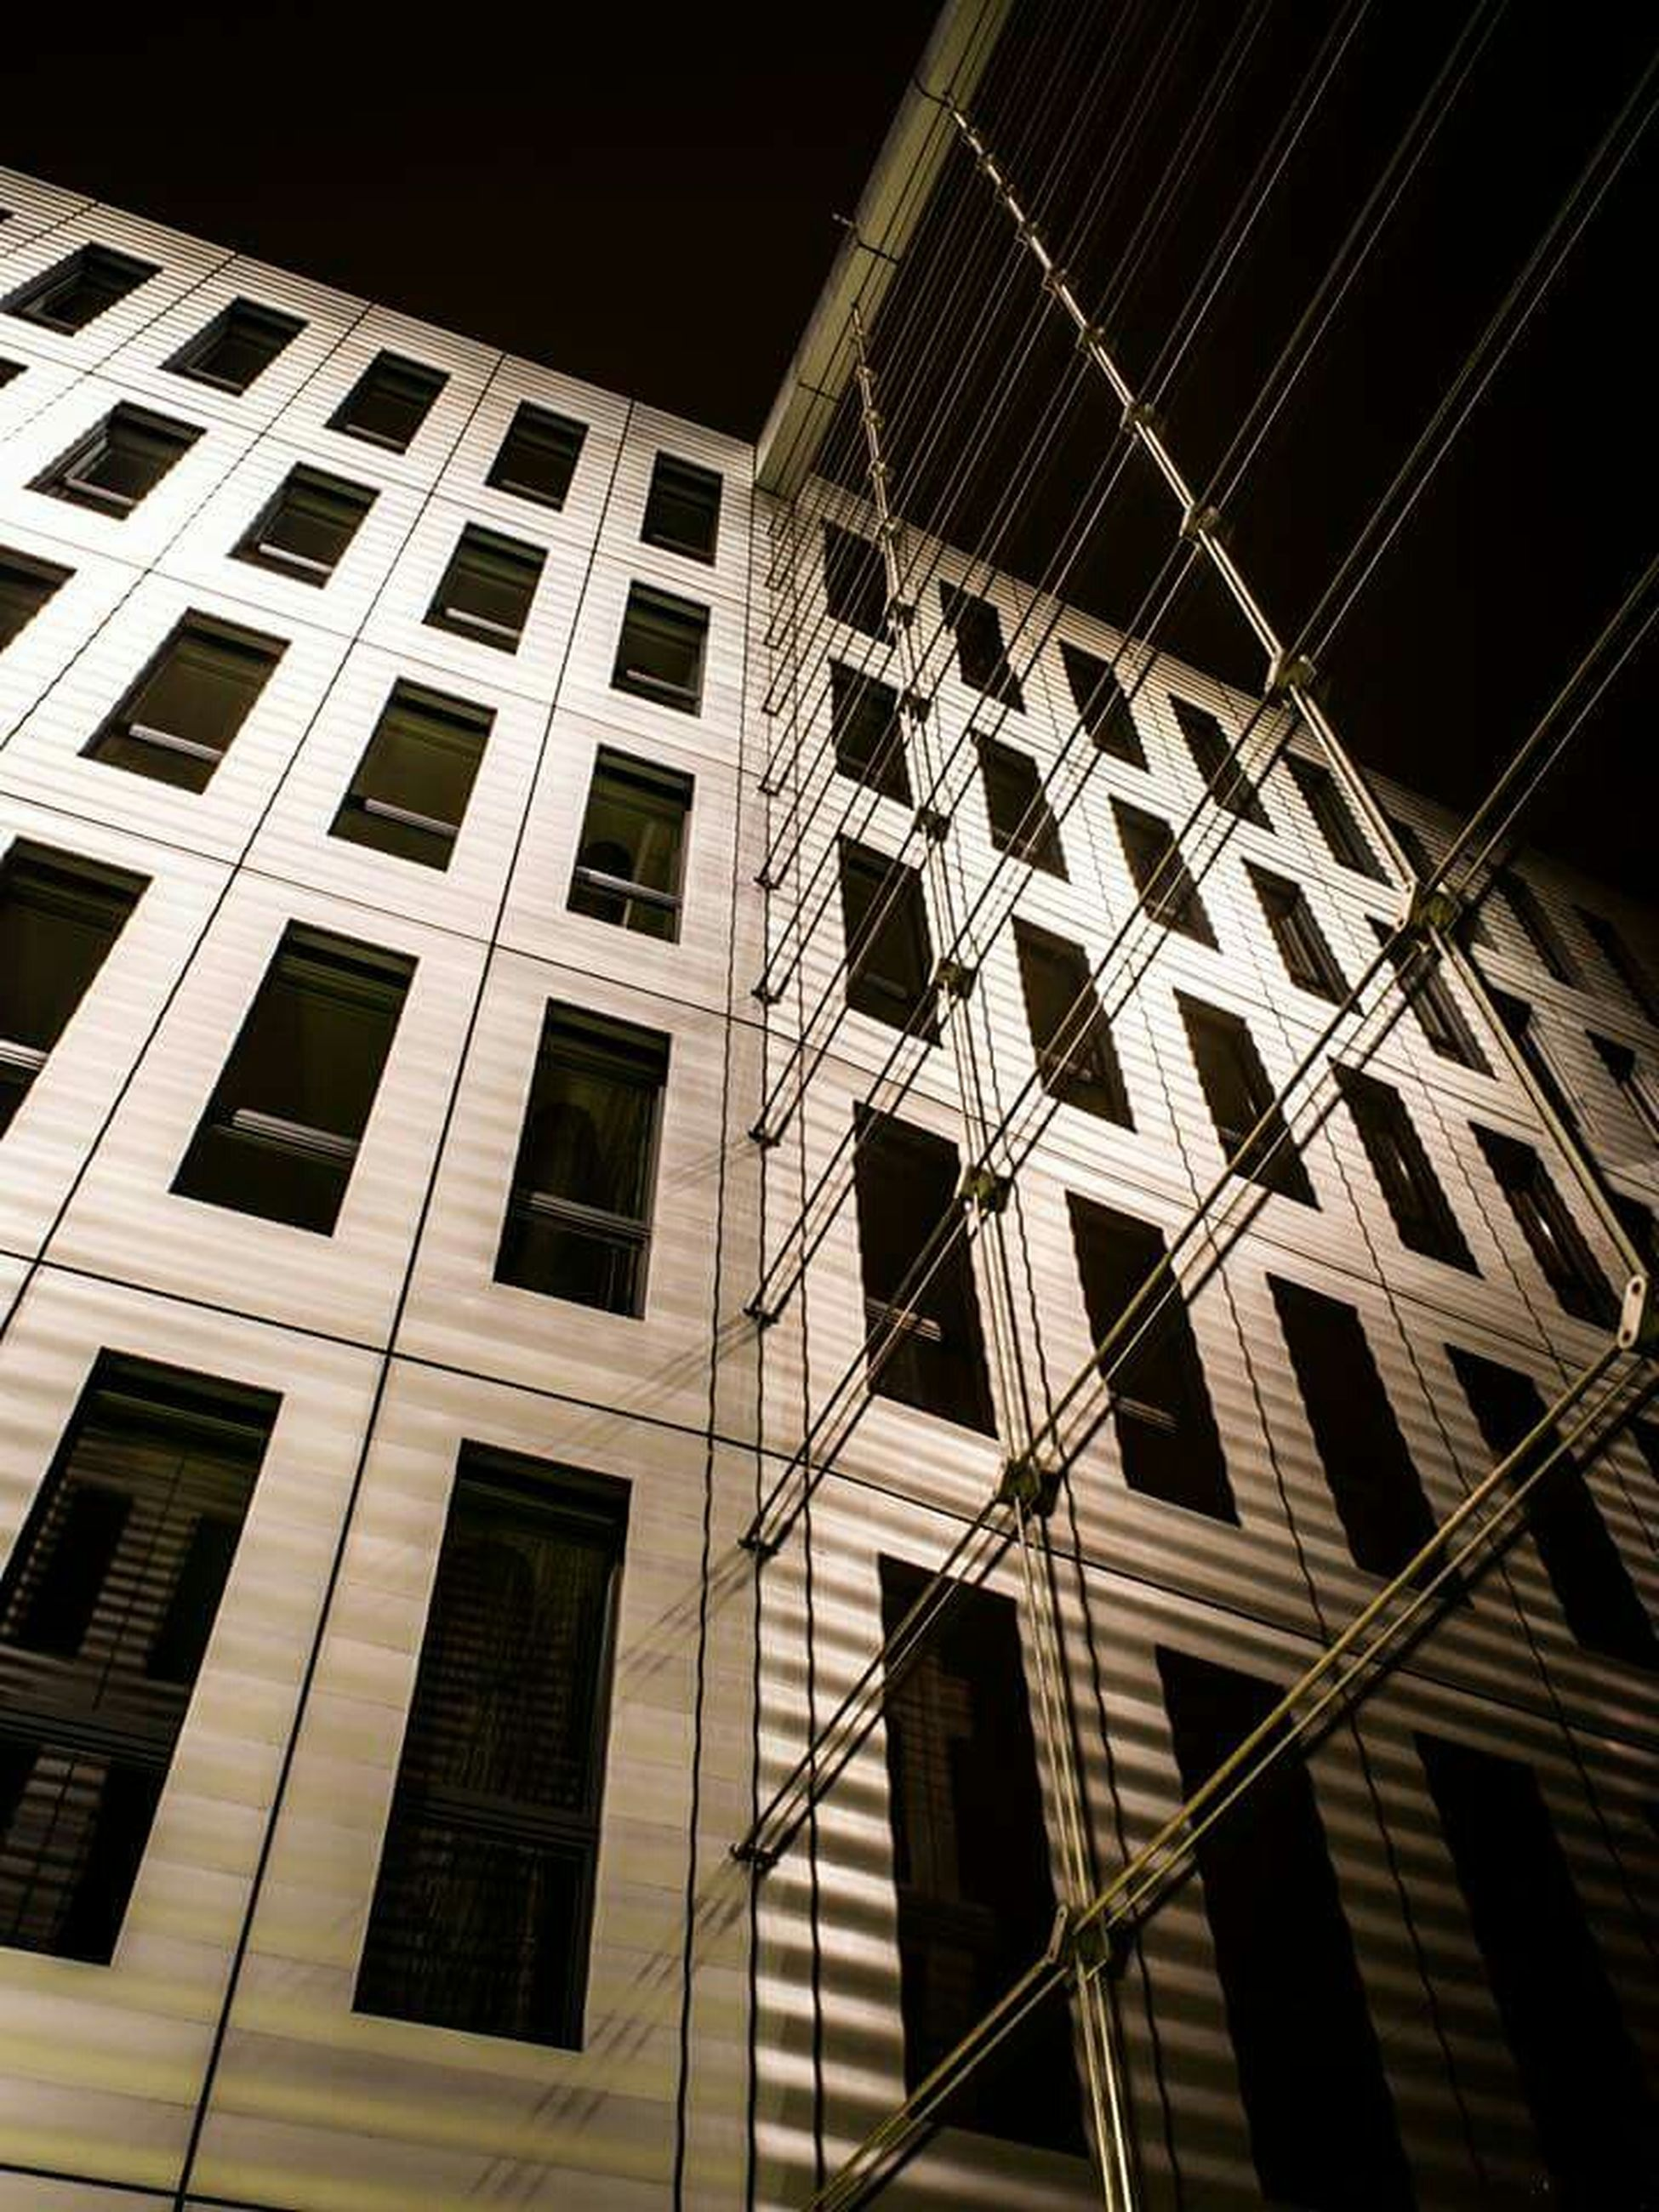 low angle view, architecture, built structure, building exterior, window, building, pattern, night, modern, repetition, architectural feature, glass - material, no people, indoors, design, geometric shape, city, office building